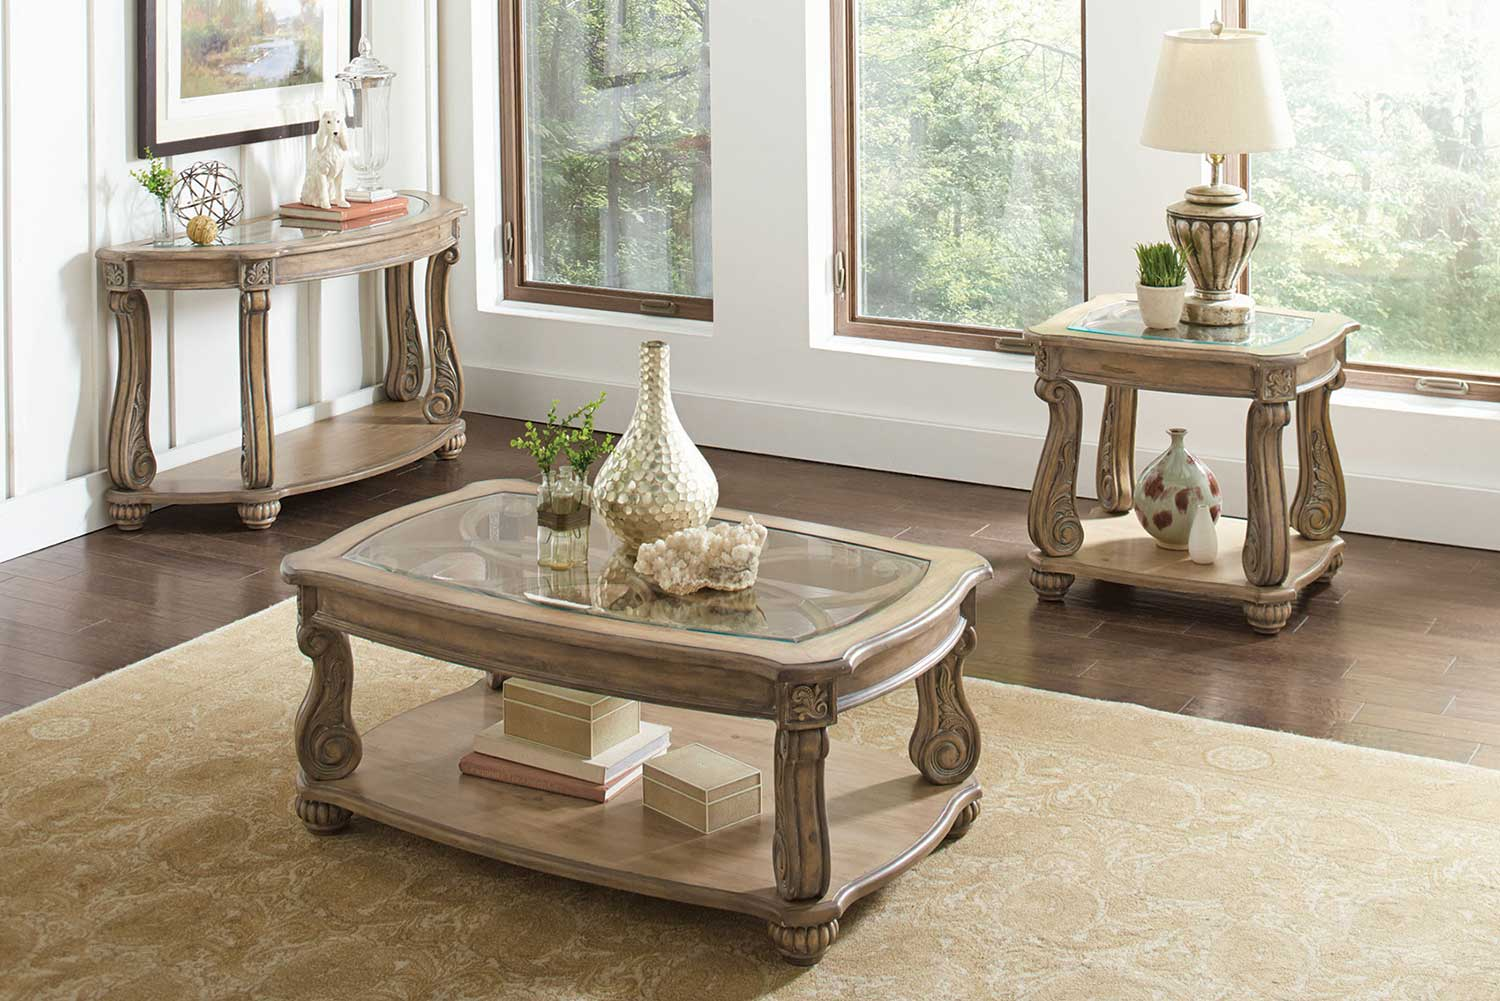 Coaster 720598 Occasional/Coffee Table Set - Antique Linen : coaster coffee table set - pezcame.com